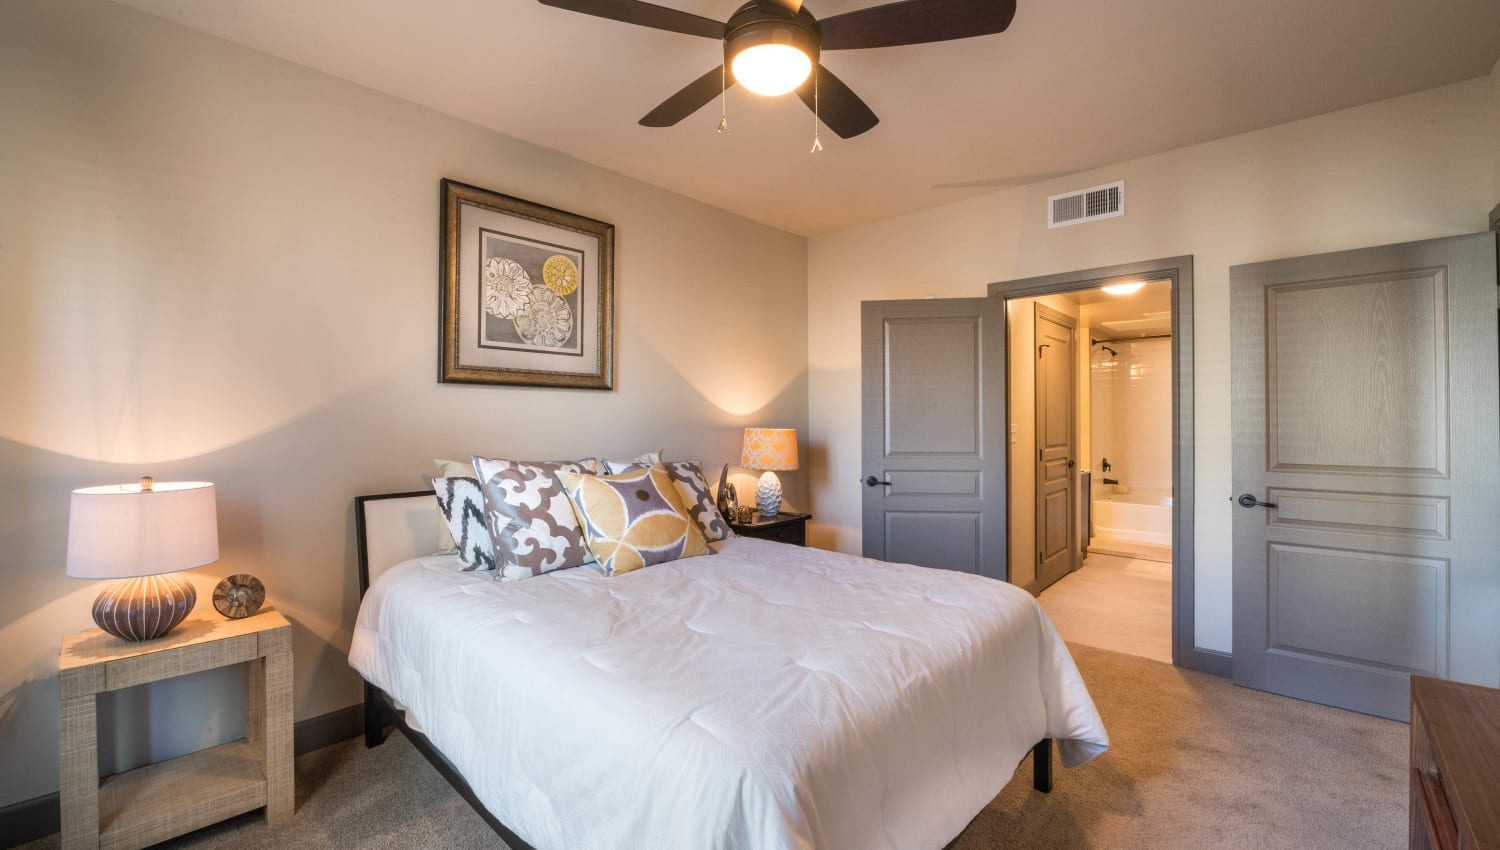 Ceiling fan and plush carpeting in a model home's master bedroom at Union At Carrollton Square in Carrollton, Texas